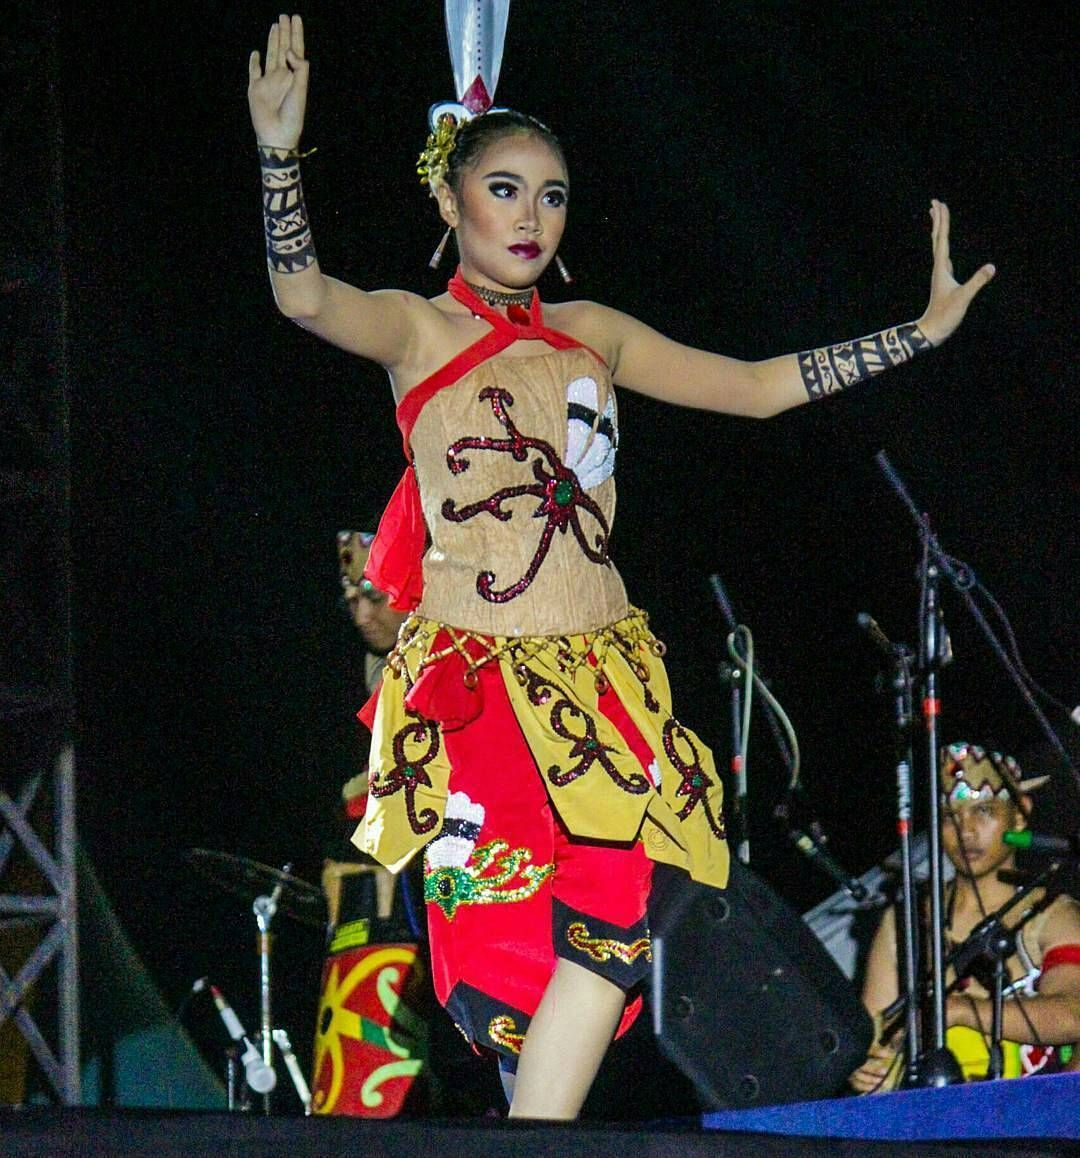 Culture of center kalimantan di festival koreografer